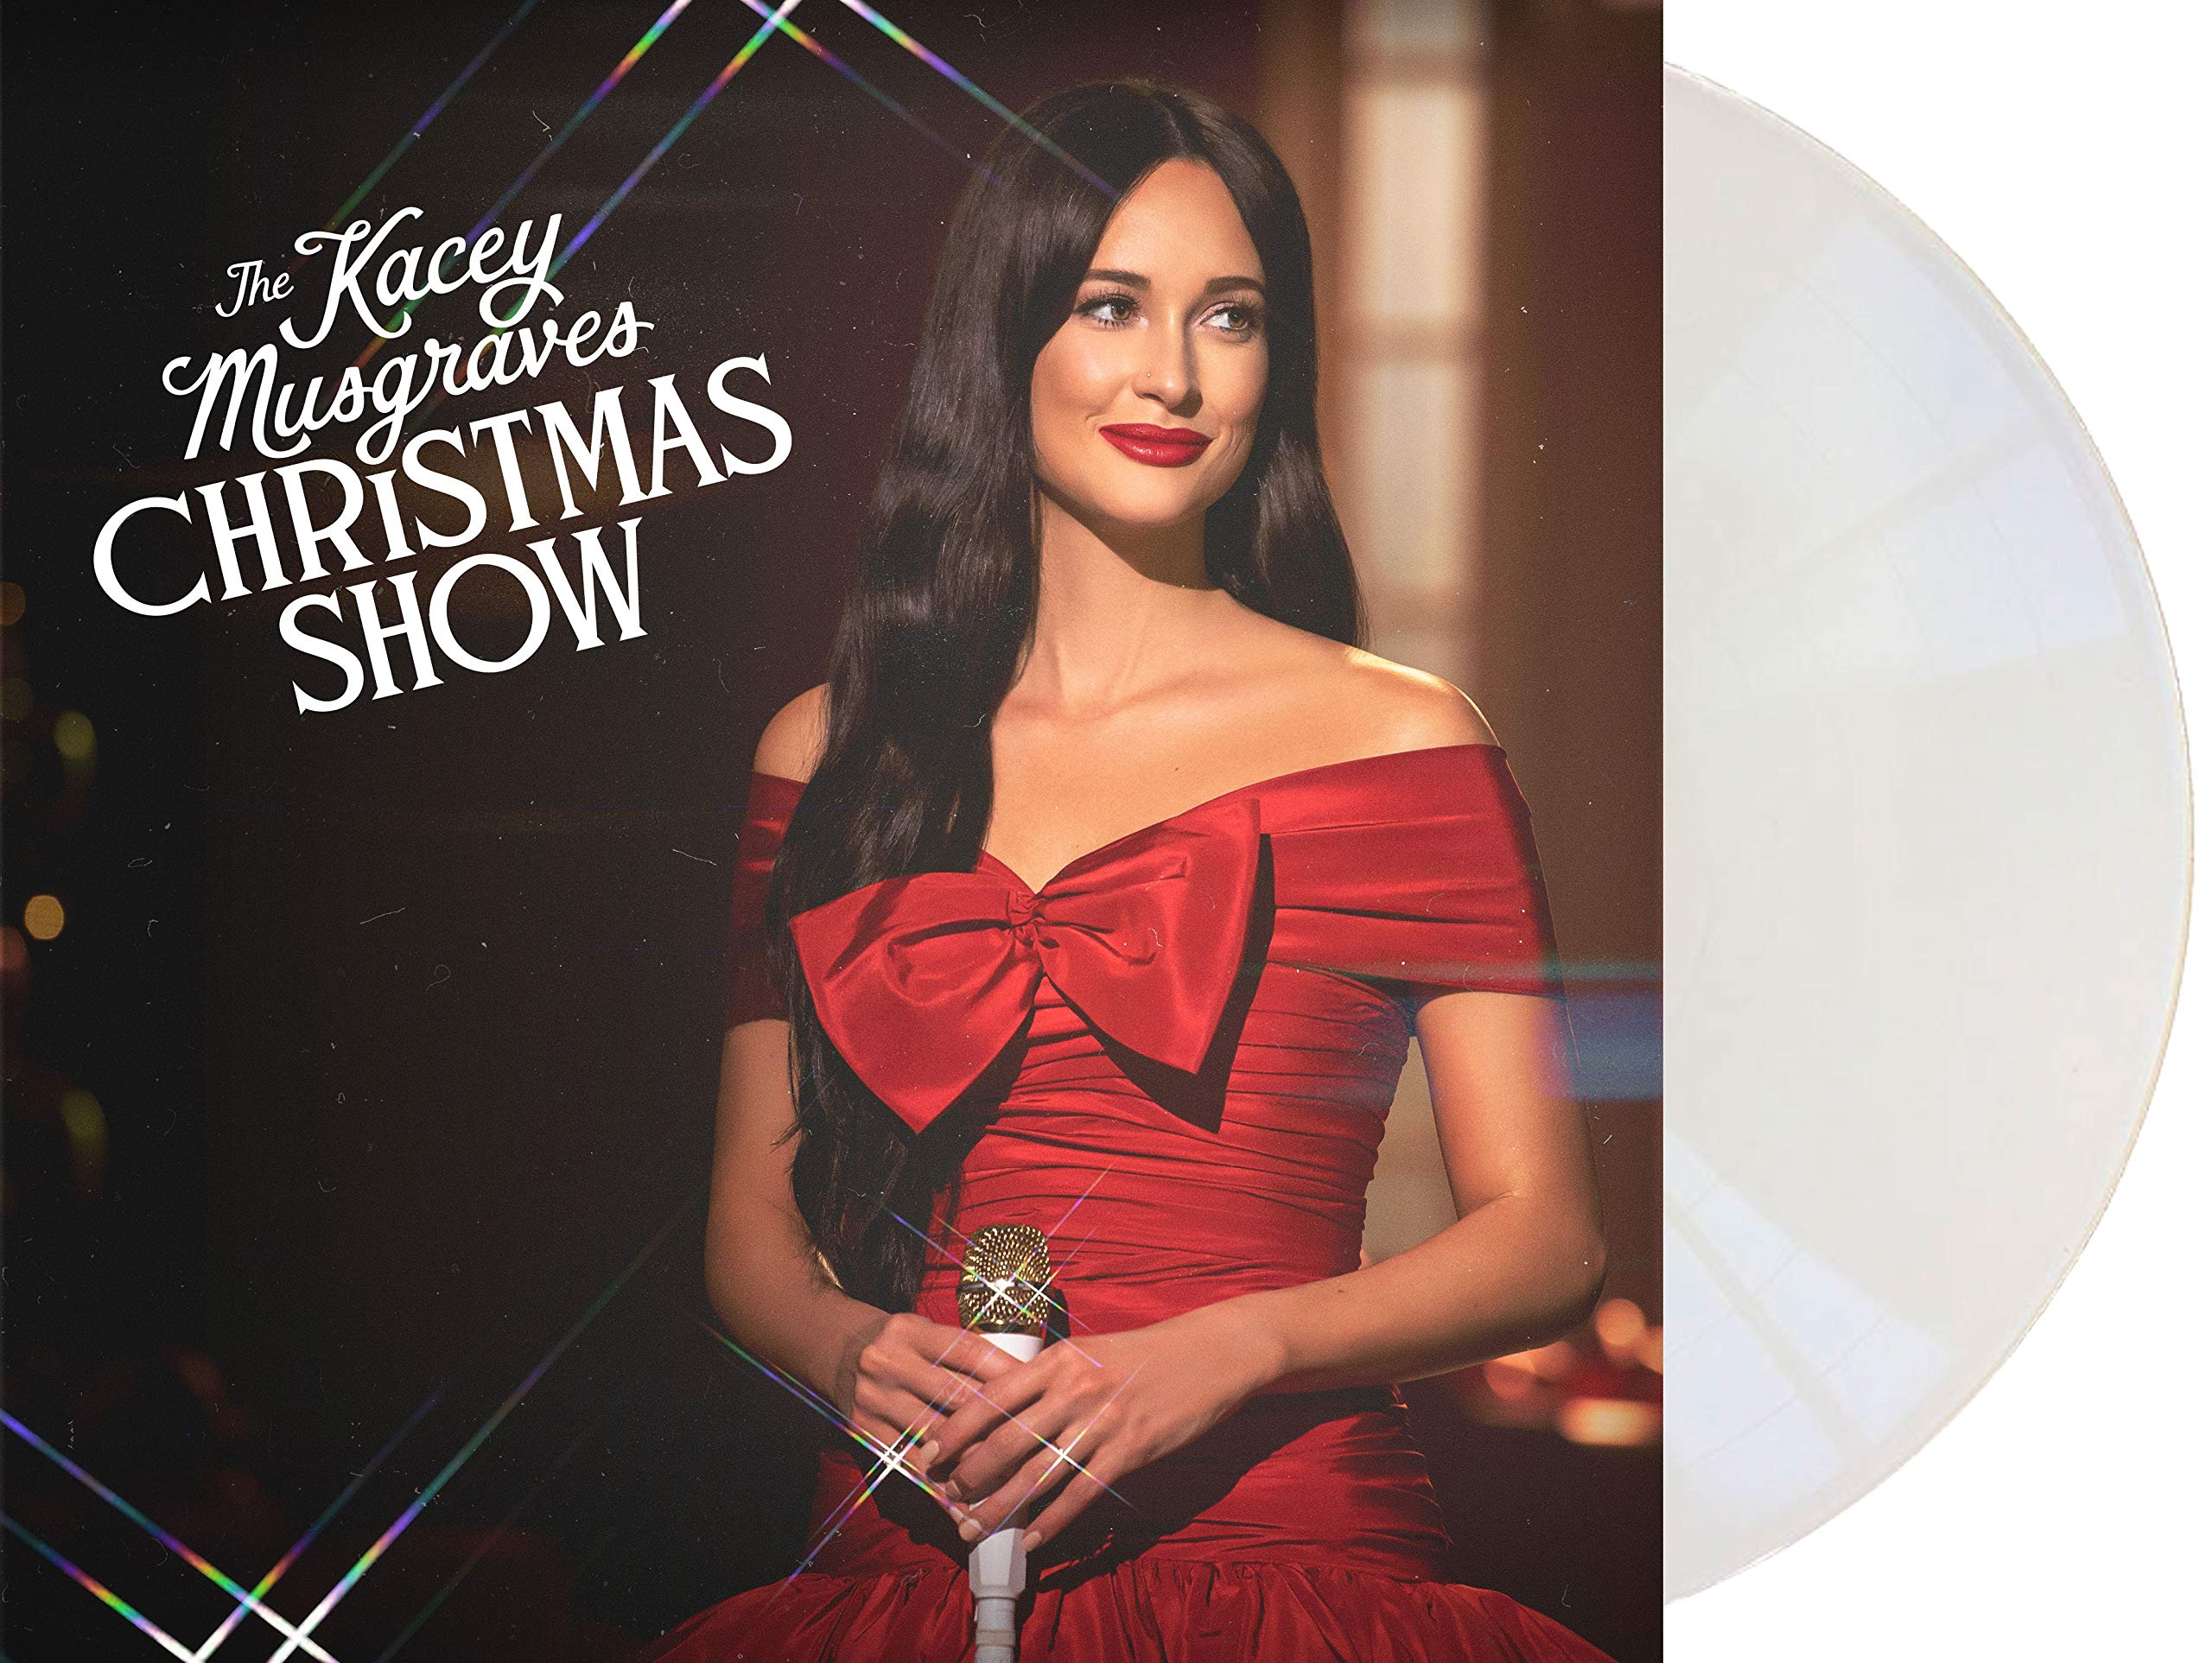 Kacey Musgraves-The Kacey Musgraves Christmas Show-CD-FLAC-2019-PERFECT